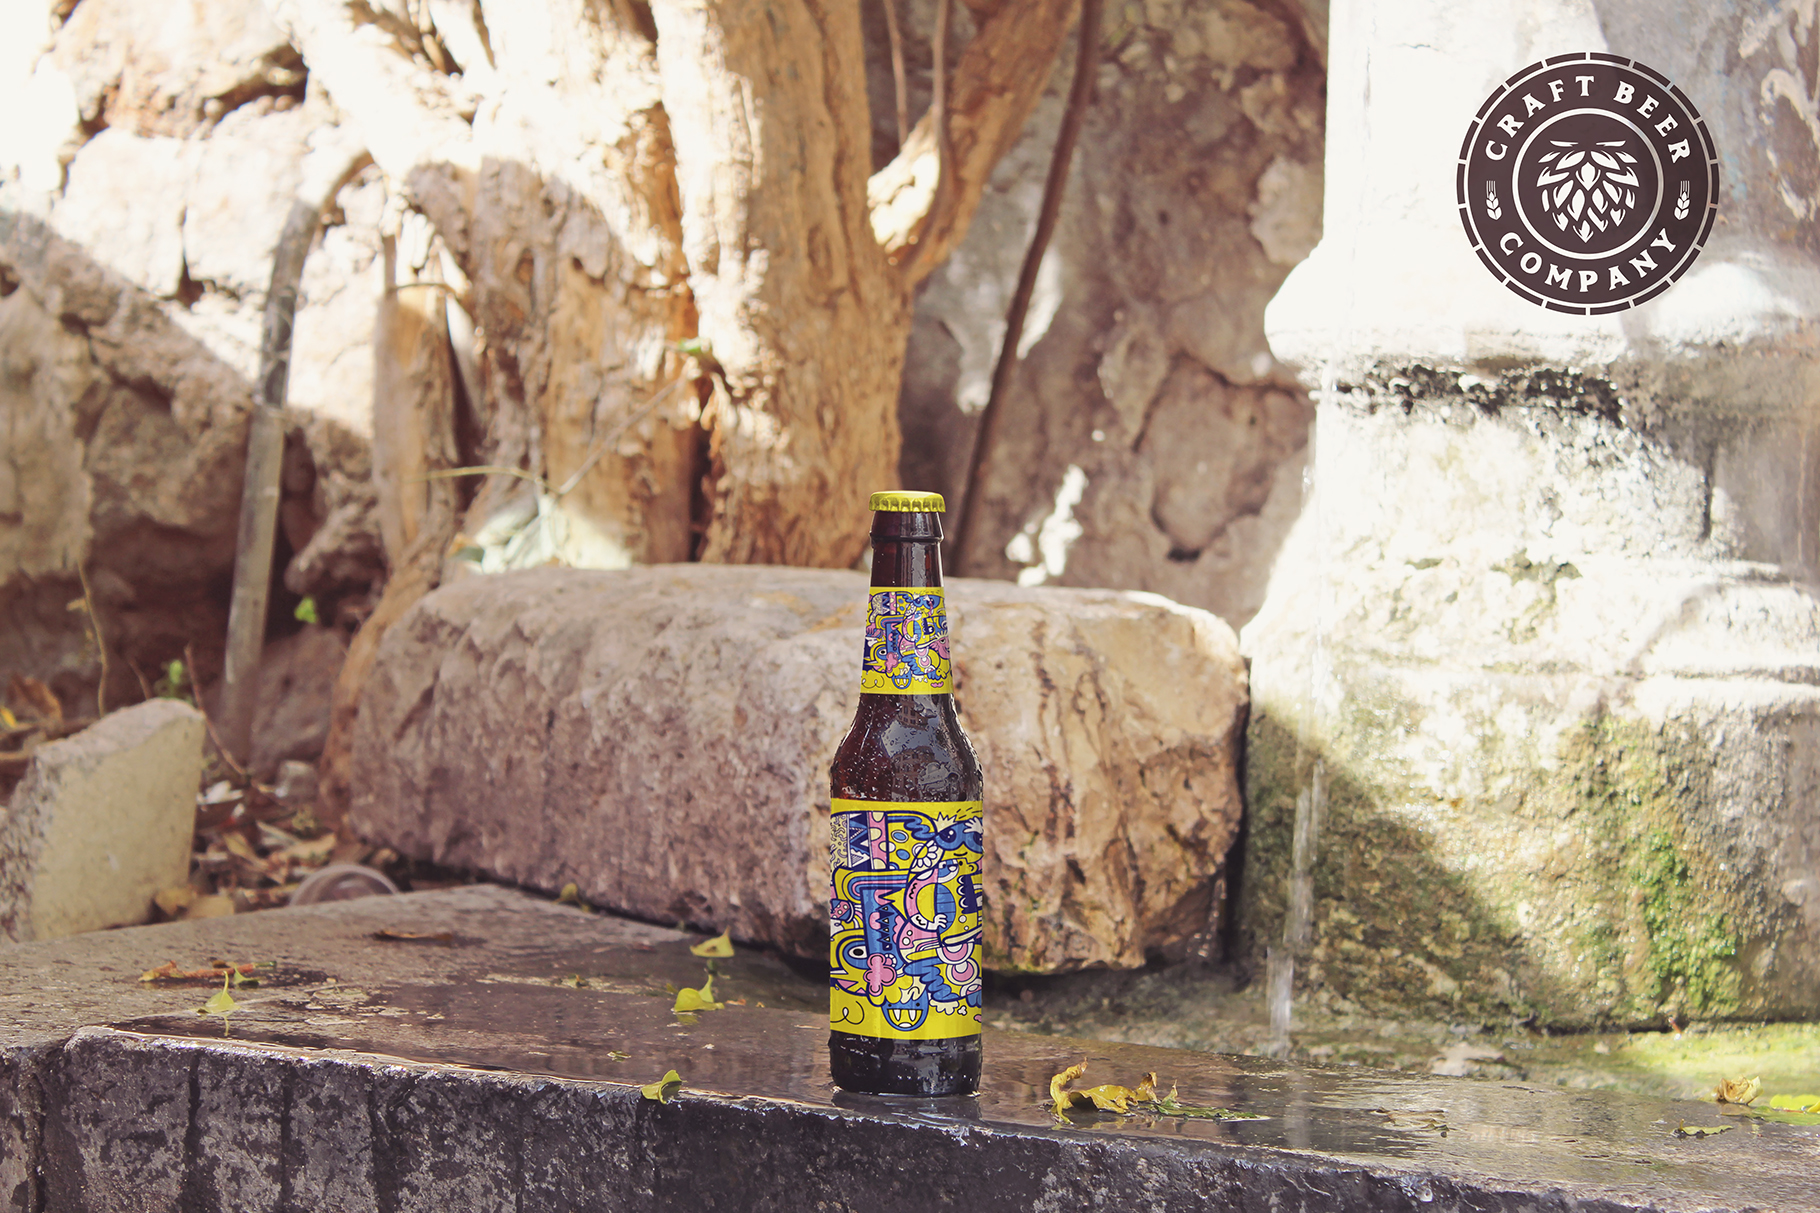 Fountain Beer Mockup example image 2